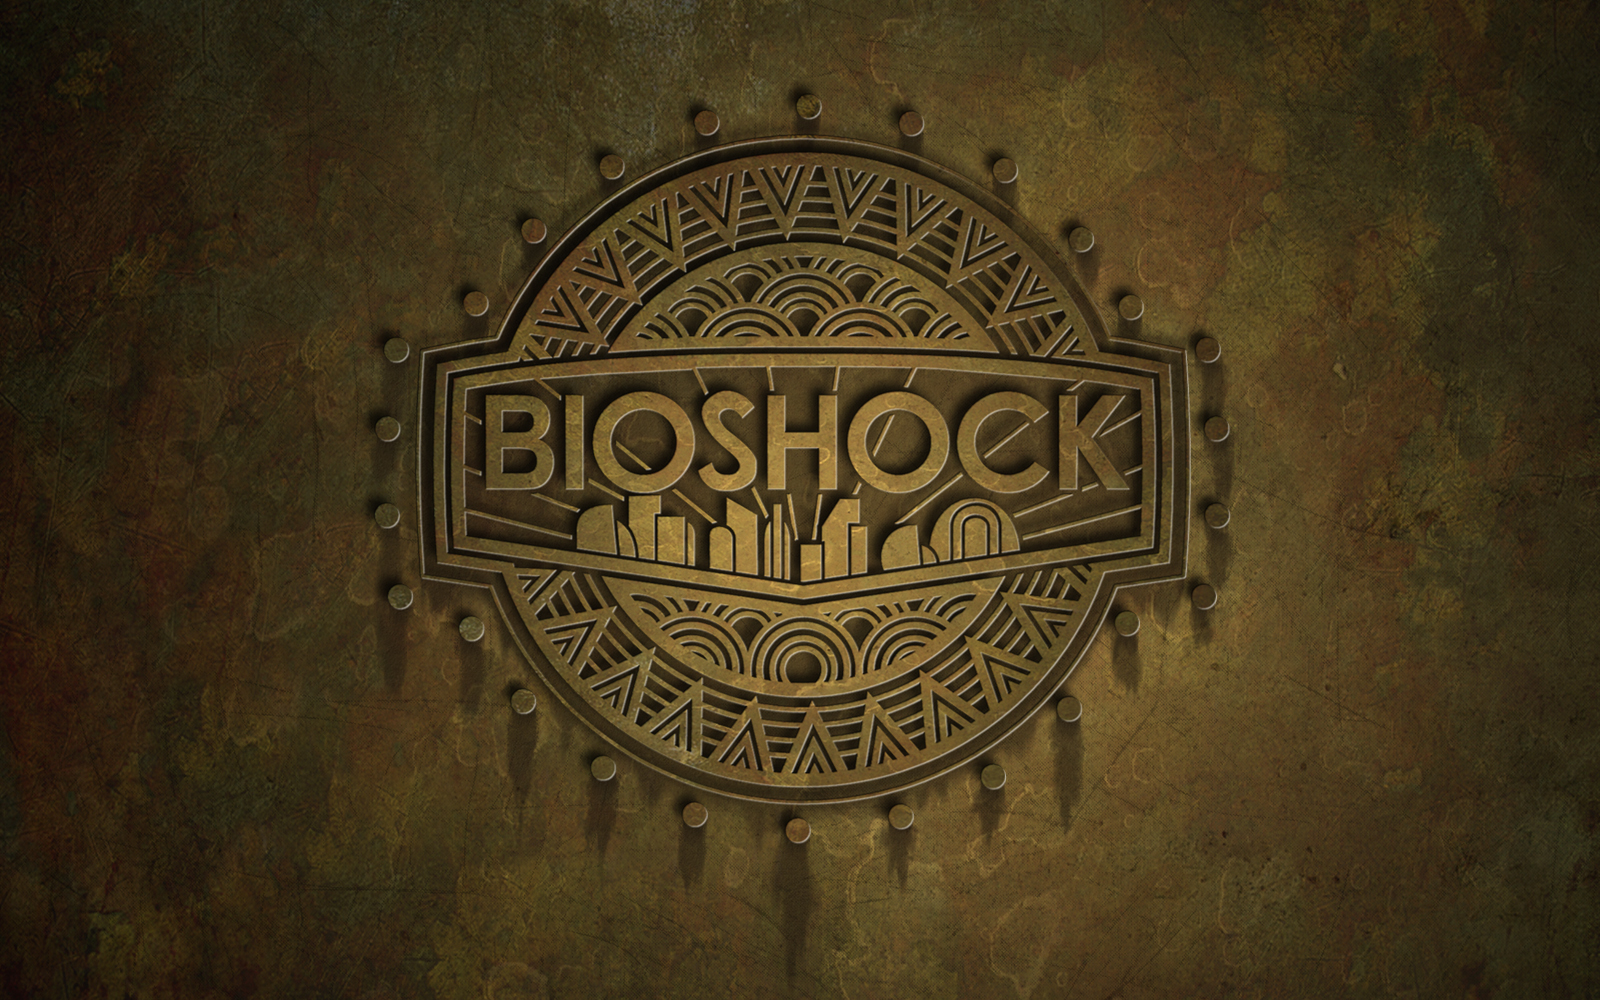 bioshock-man-hole-cover.jpg